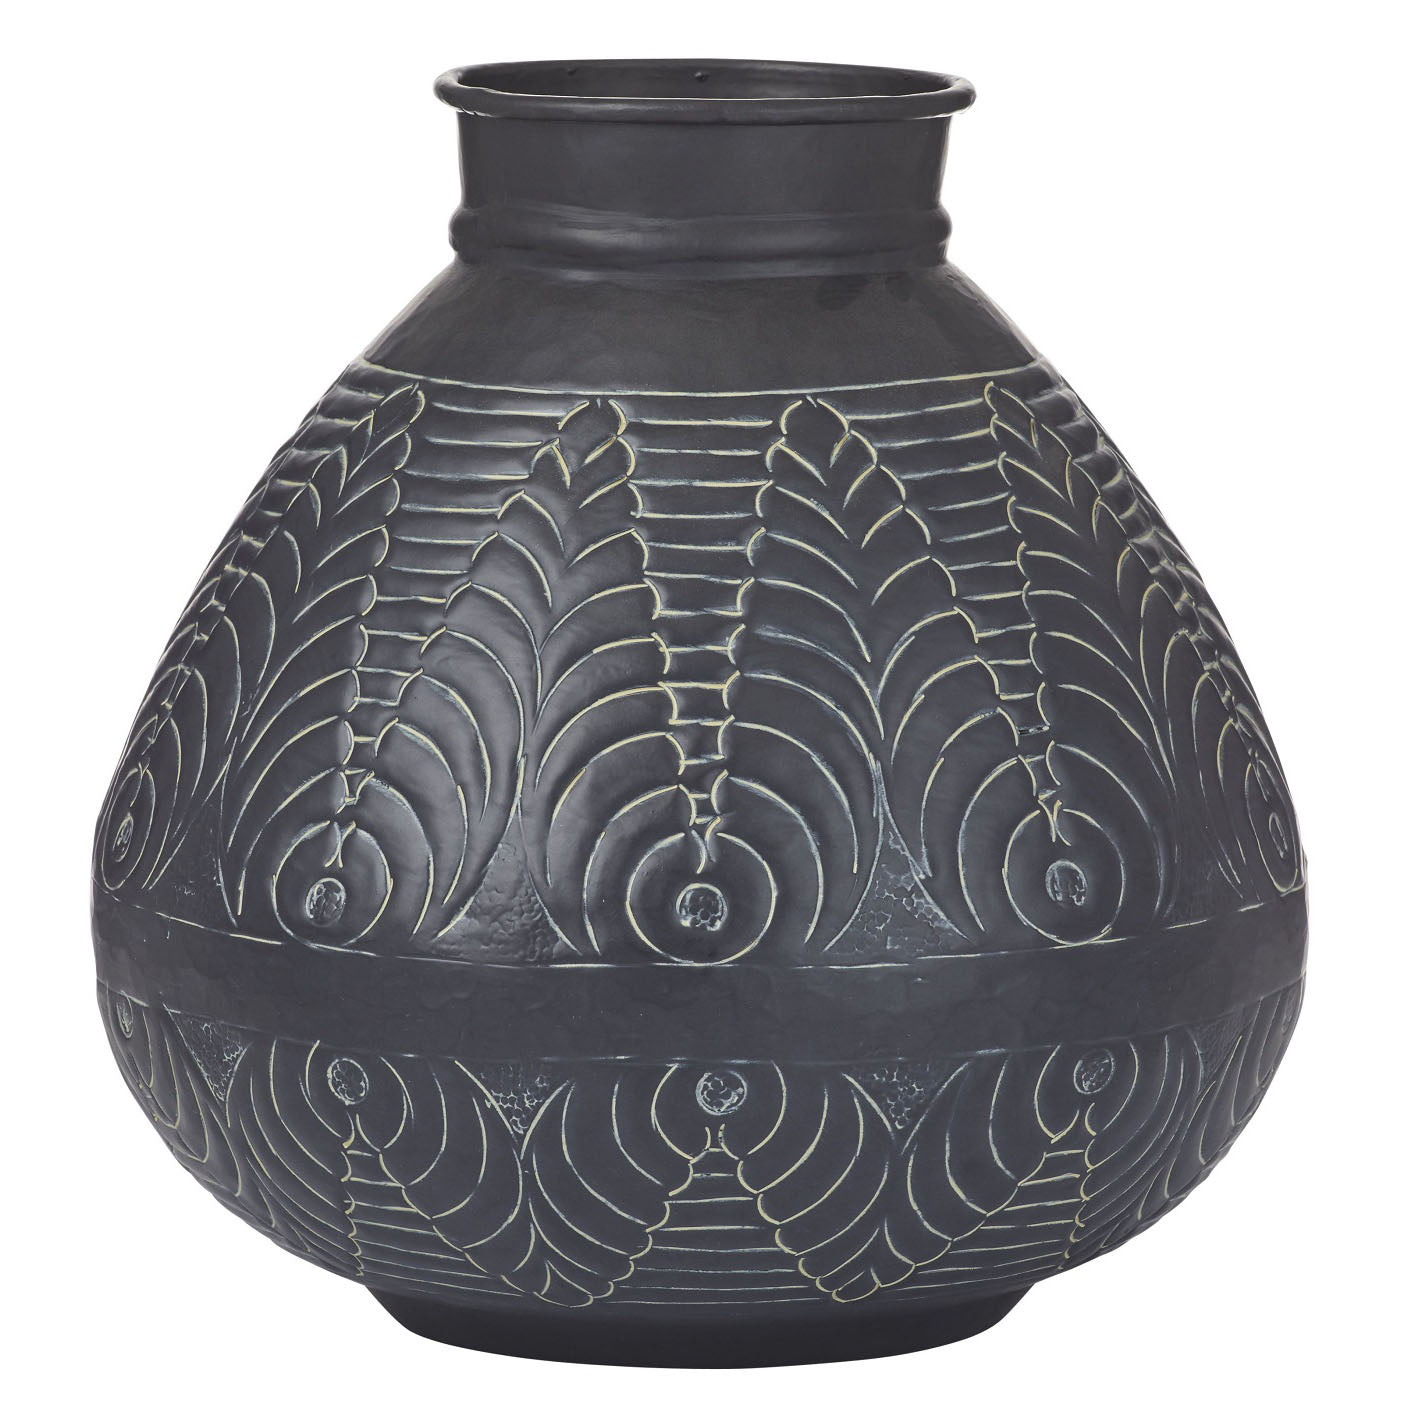 Madri Vase from Amalfi lightbox gift and home